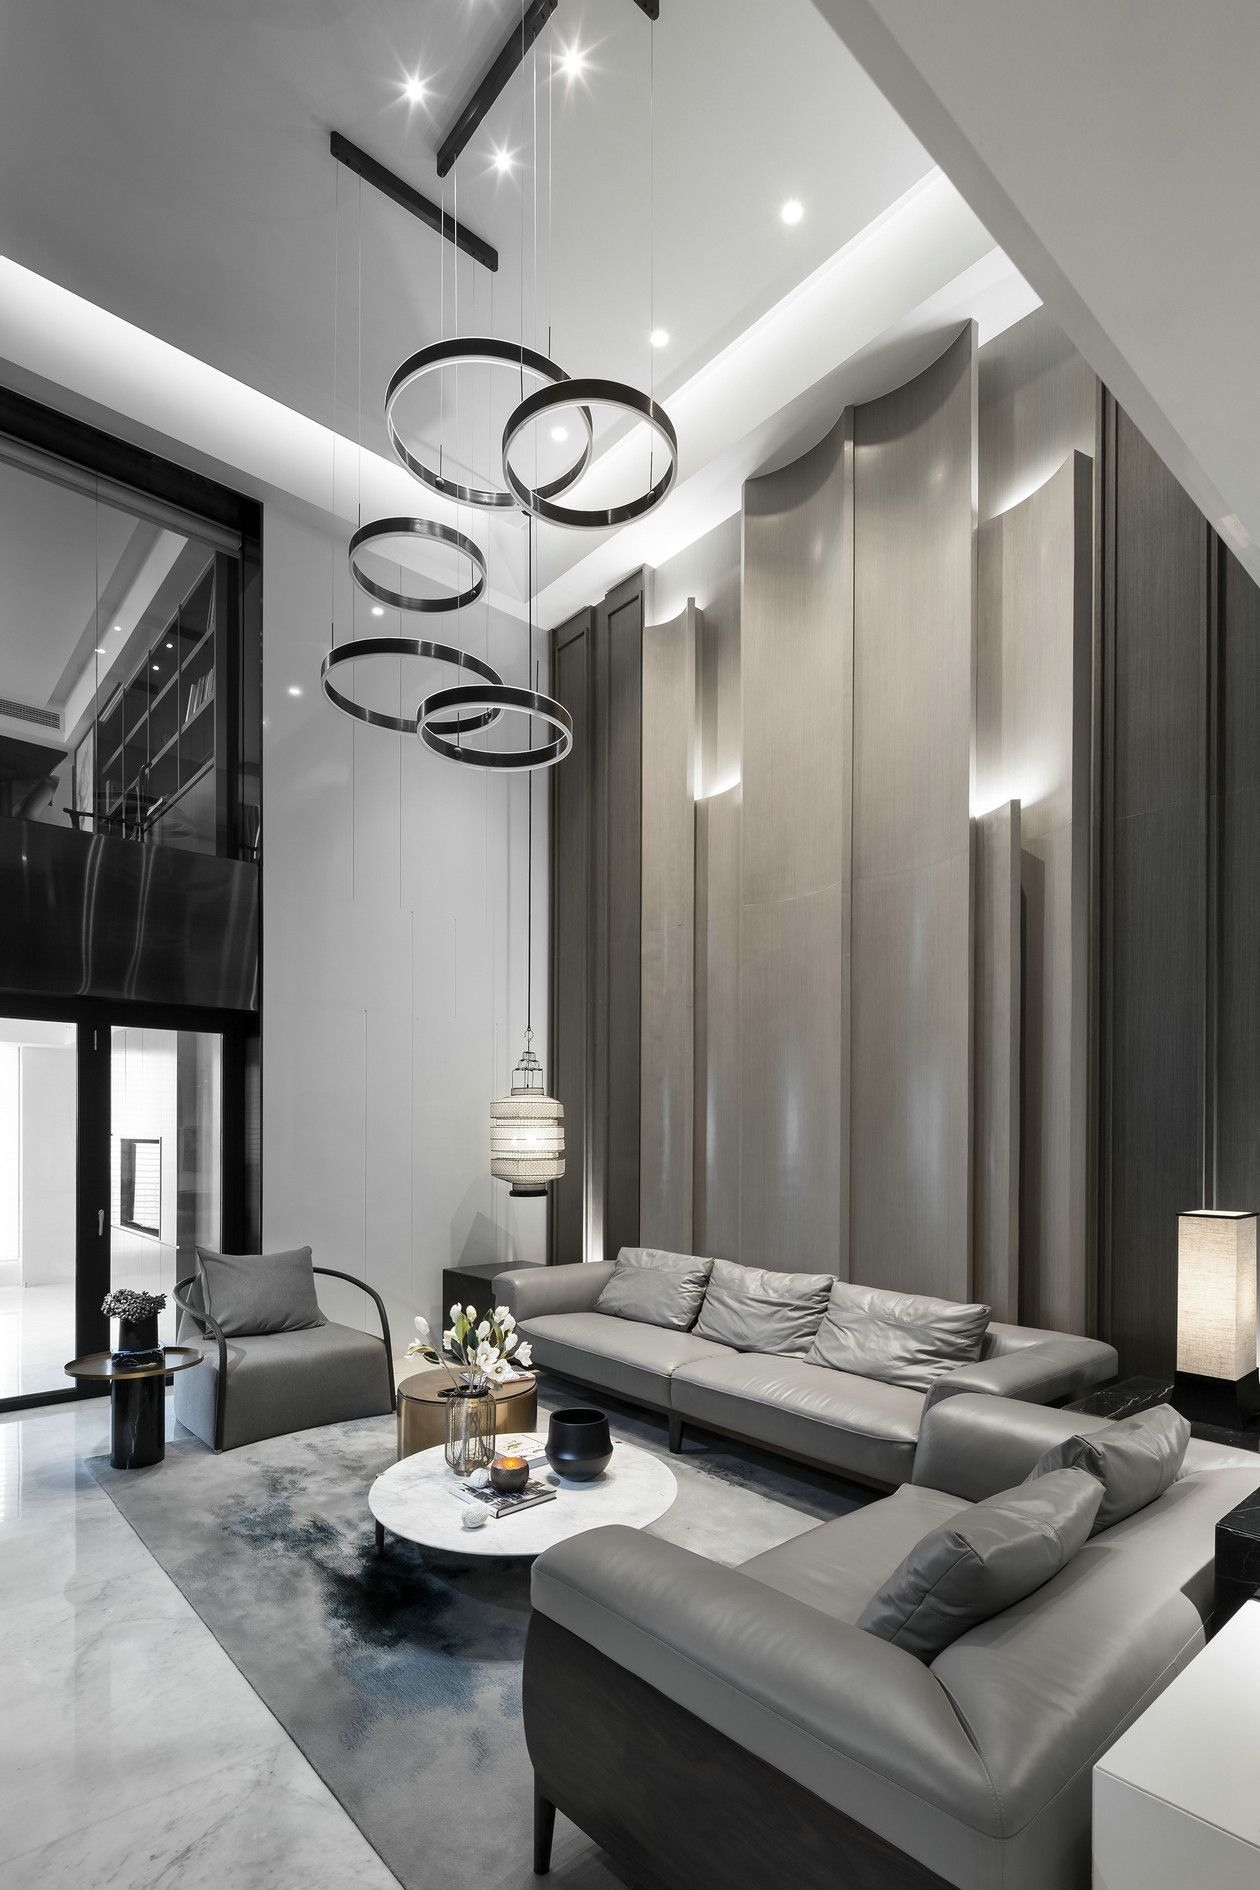 Get Inspiration For Your Work In Progress A New Interior Design